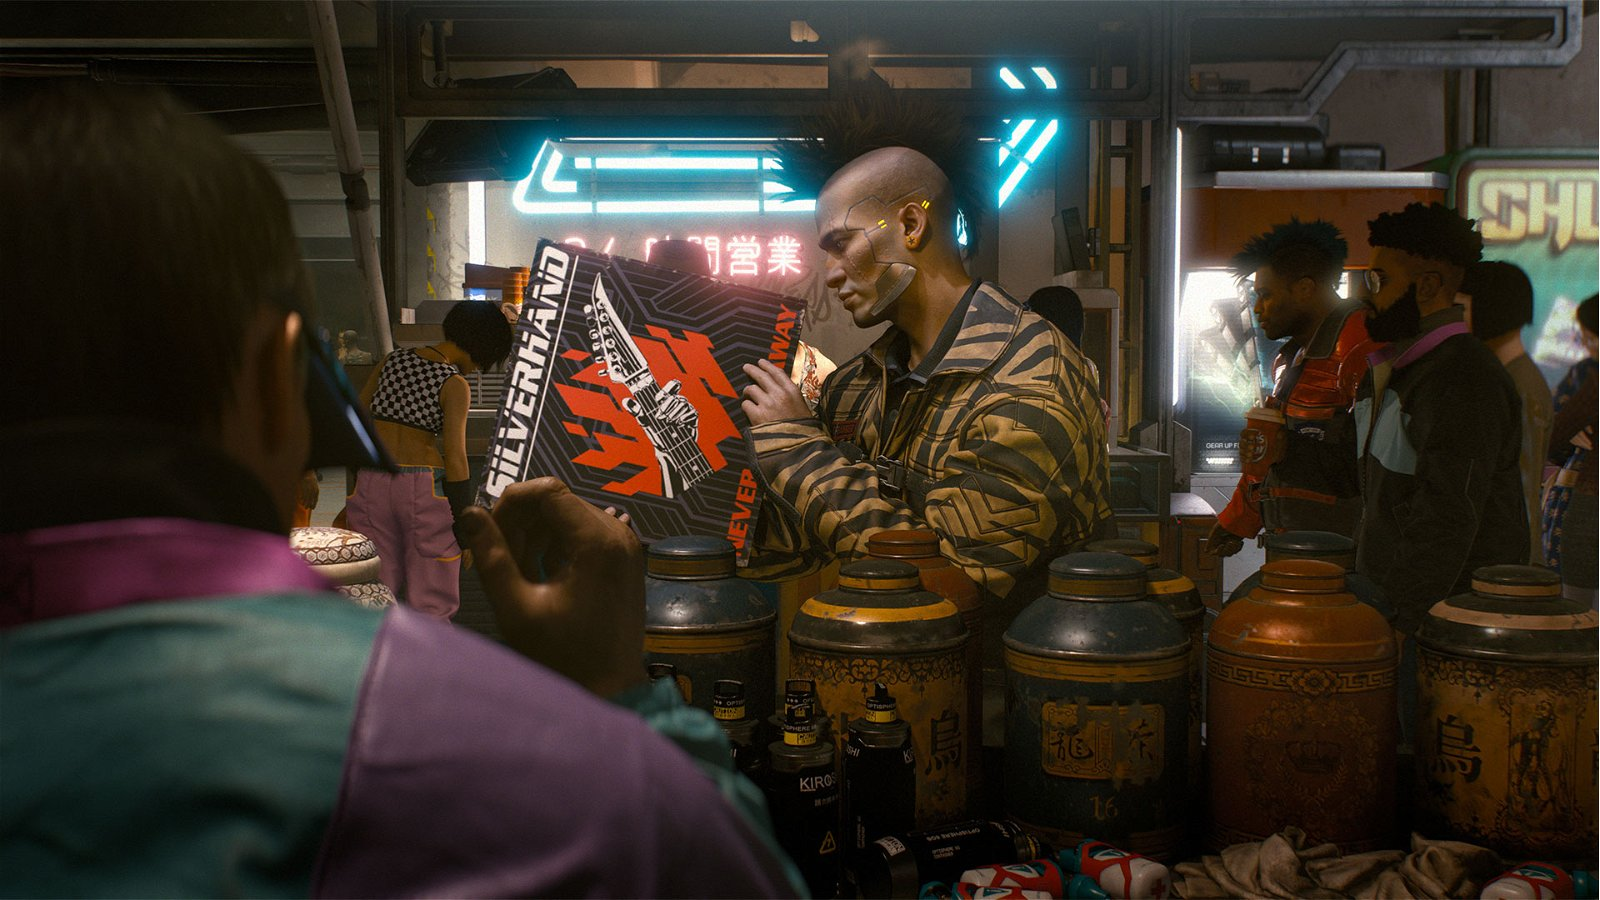 Cyberpunk 2077 is the Gibson-esk RPG we Have Always Wanted